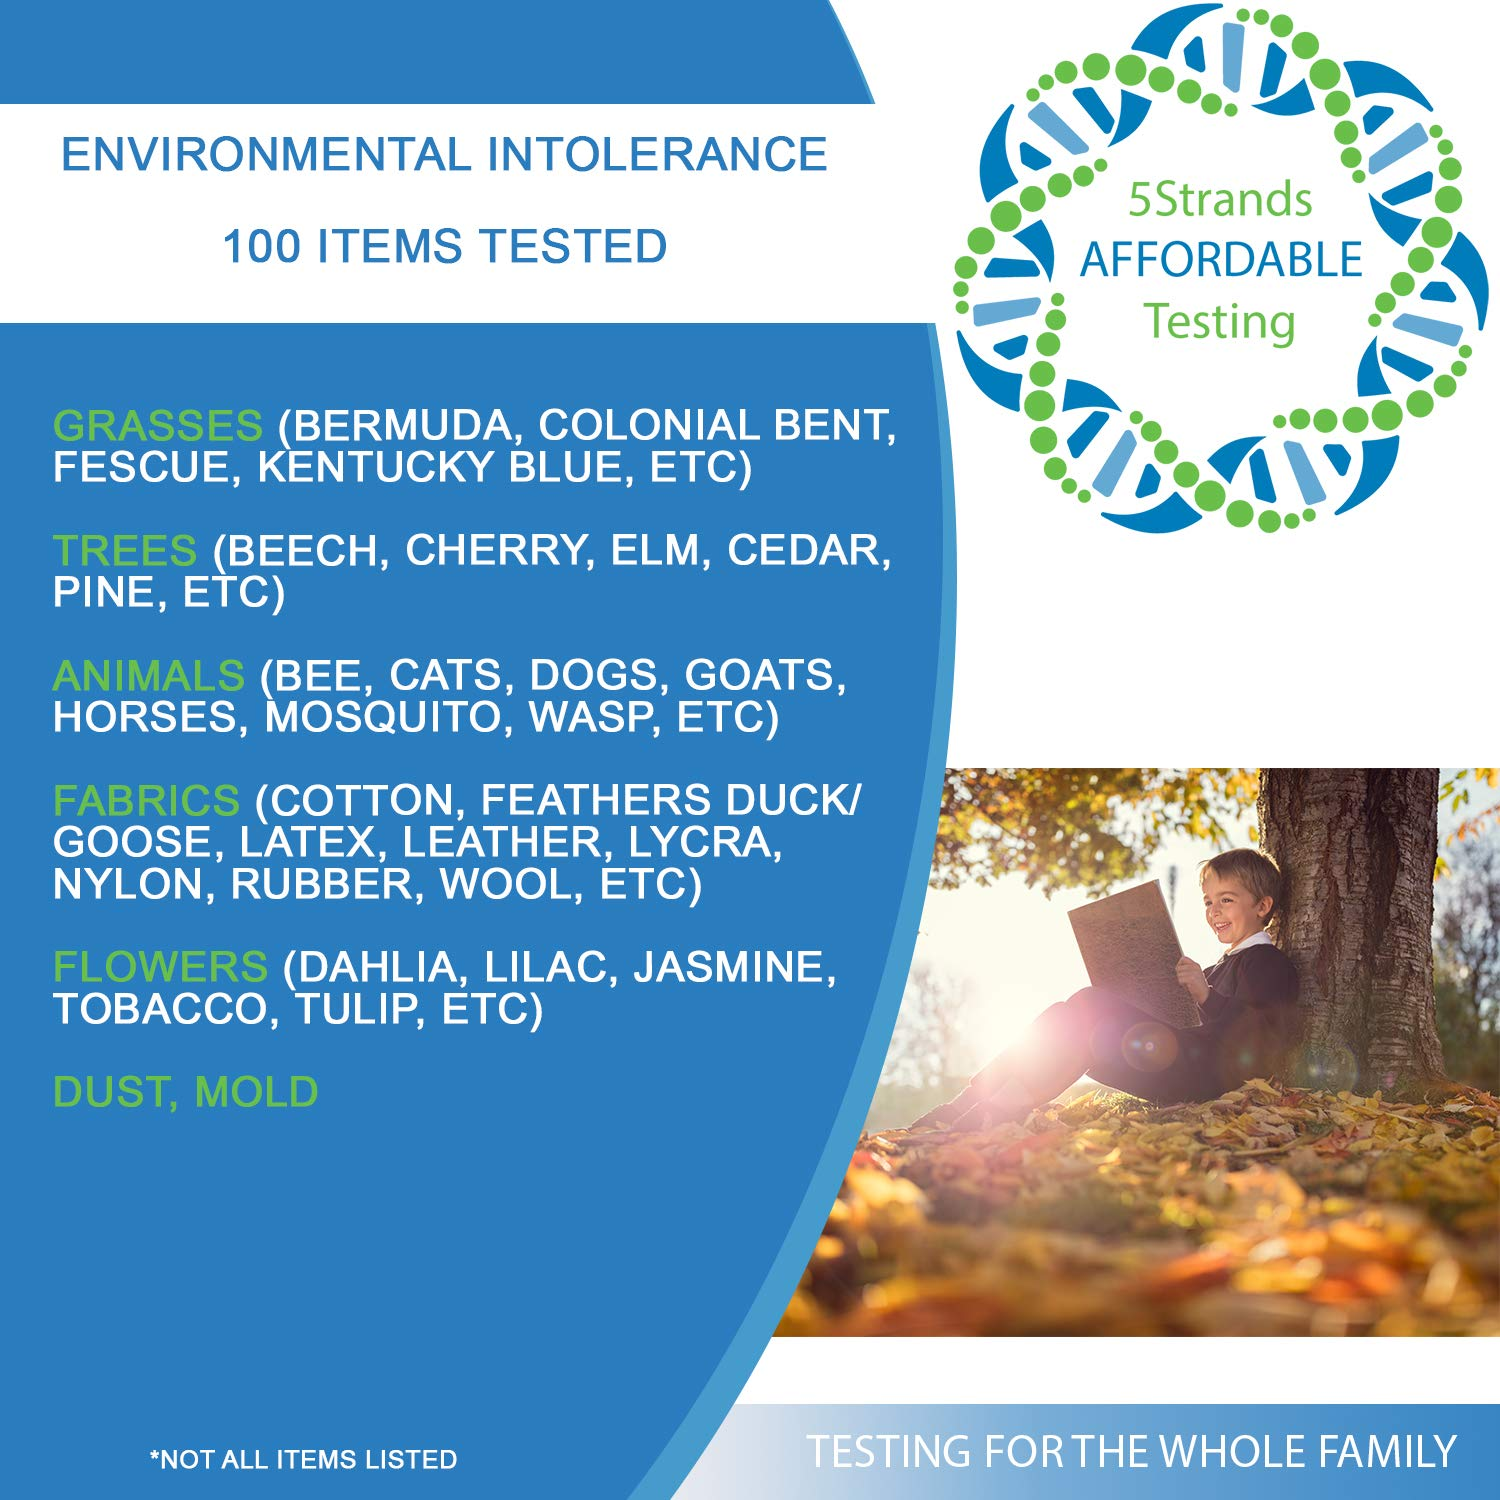 5Strands | Affordable Allergy & Intolerance Adult Test | at Home Environmental & Food Intolerance Kit | Tests for Over 350 Sensitivities & Allergens | Hair Analysis | Results in 1-2 Weeks | 1 Pack by 5Strands (Image #7)